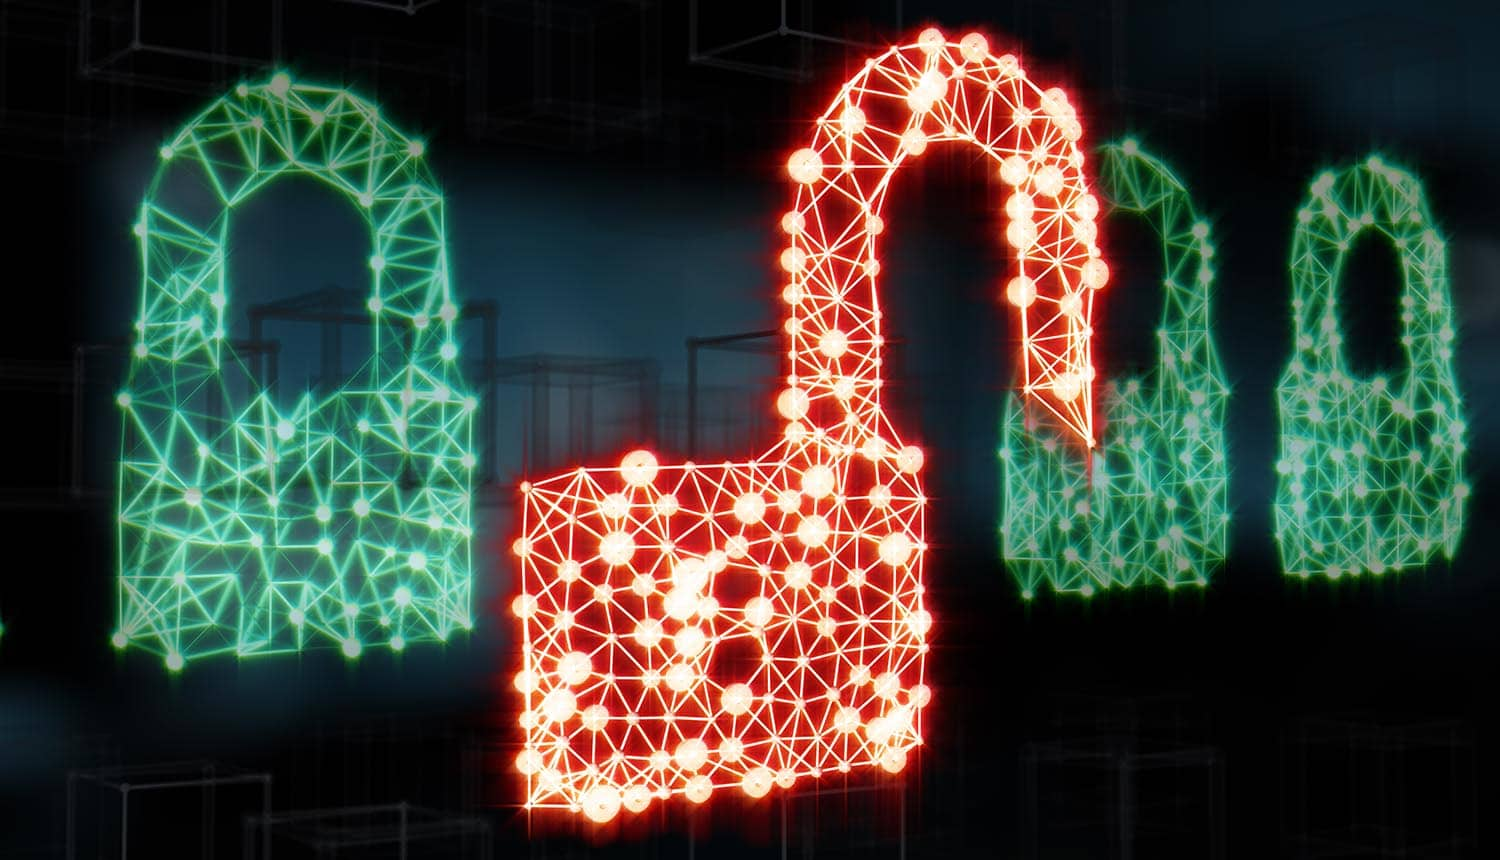 Padlocks symbolizing data protection in the network showing Russian hackers brute force passwords